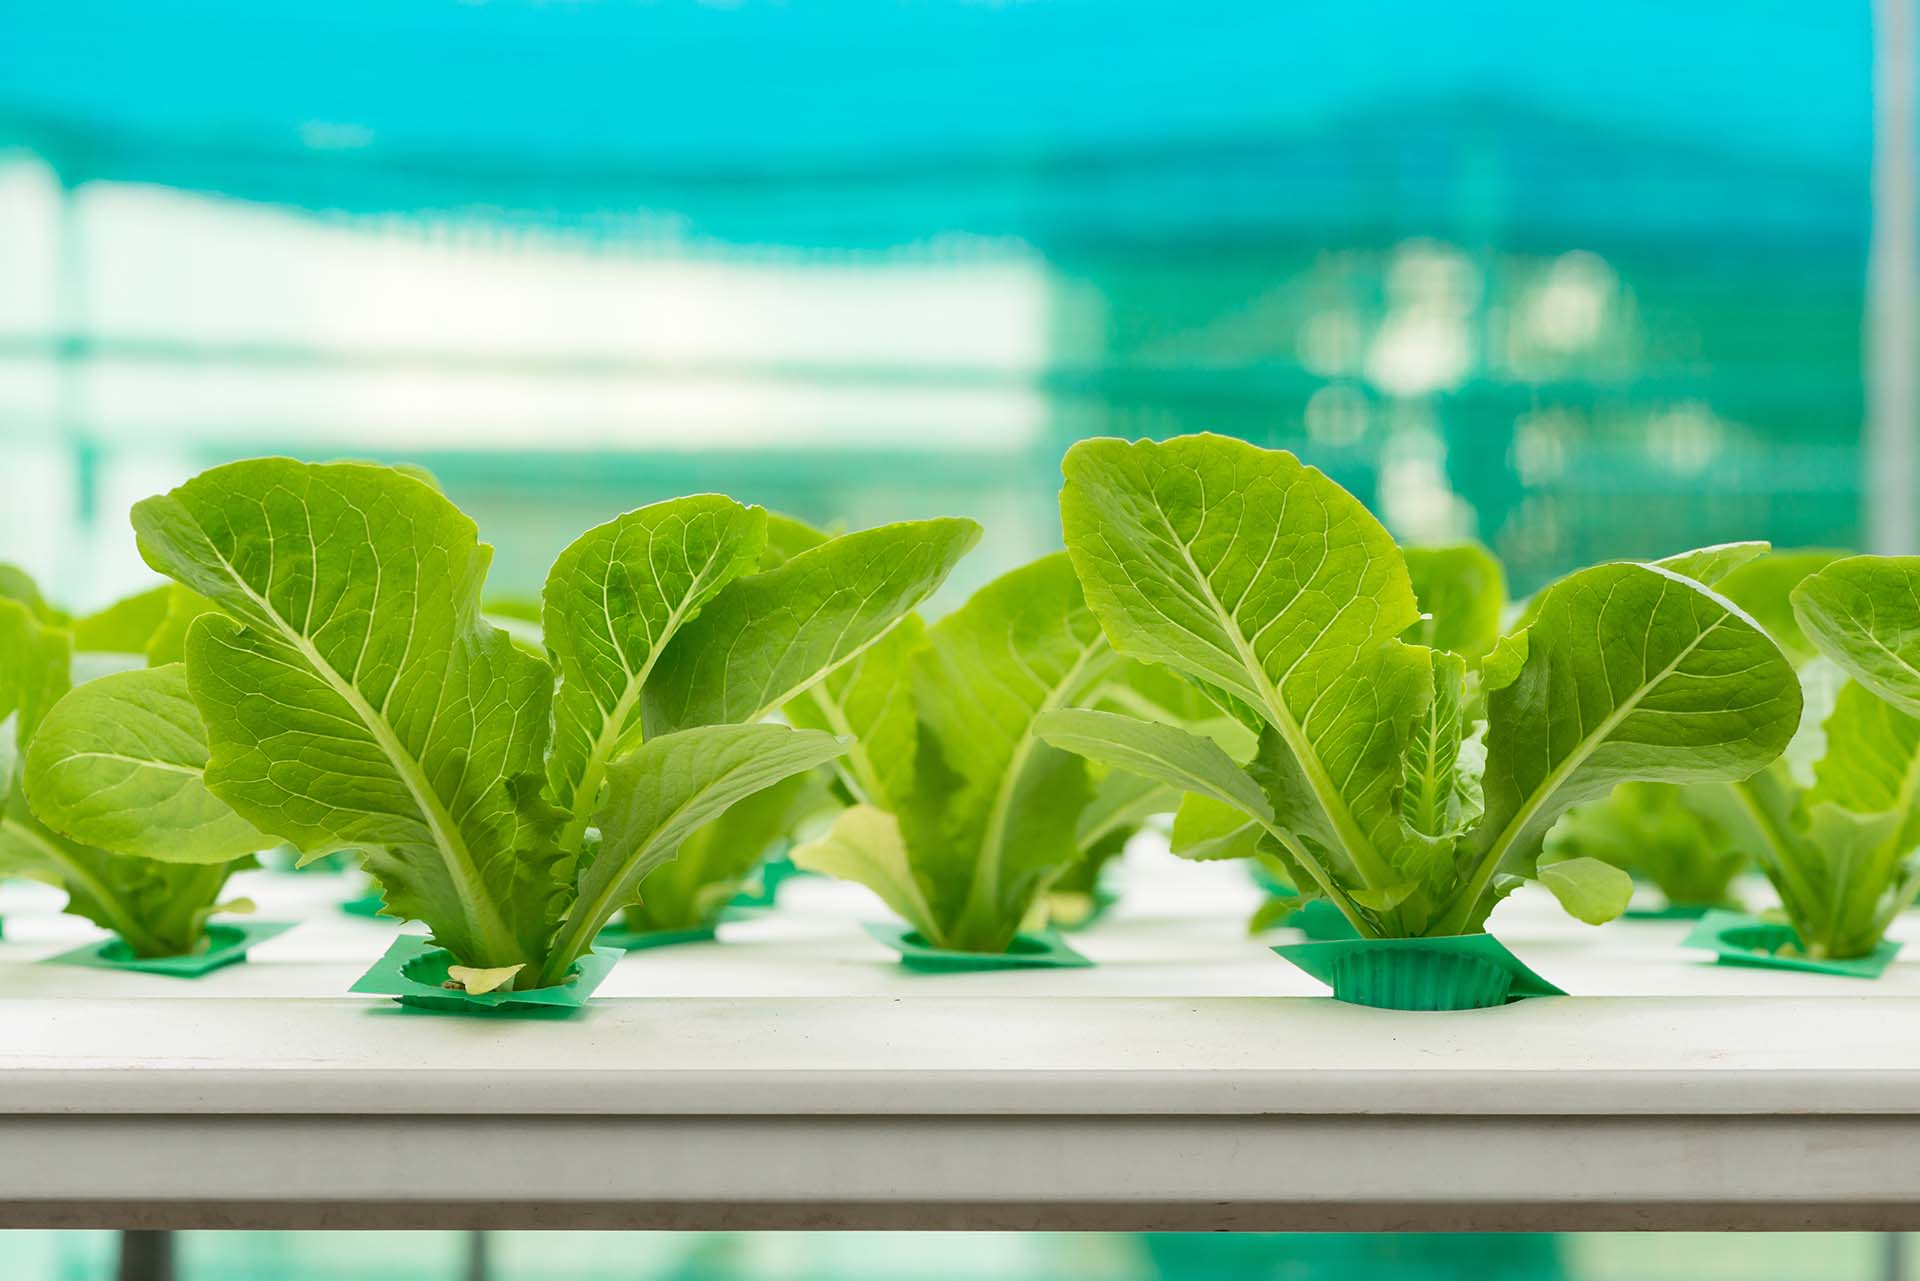 About Hydroponics and Aquaponics - uPONICs, Hydroponics and